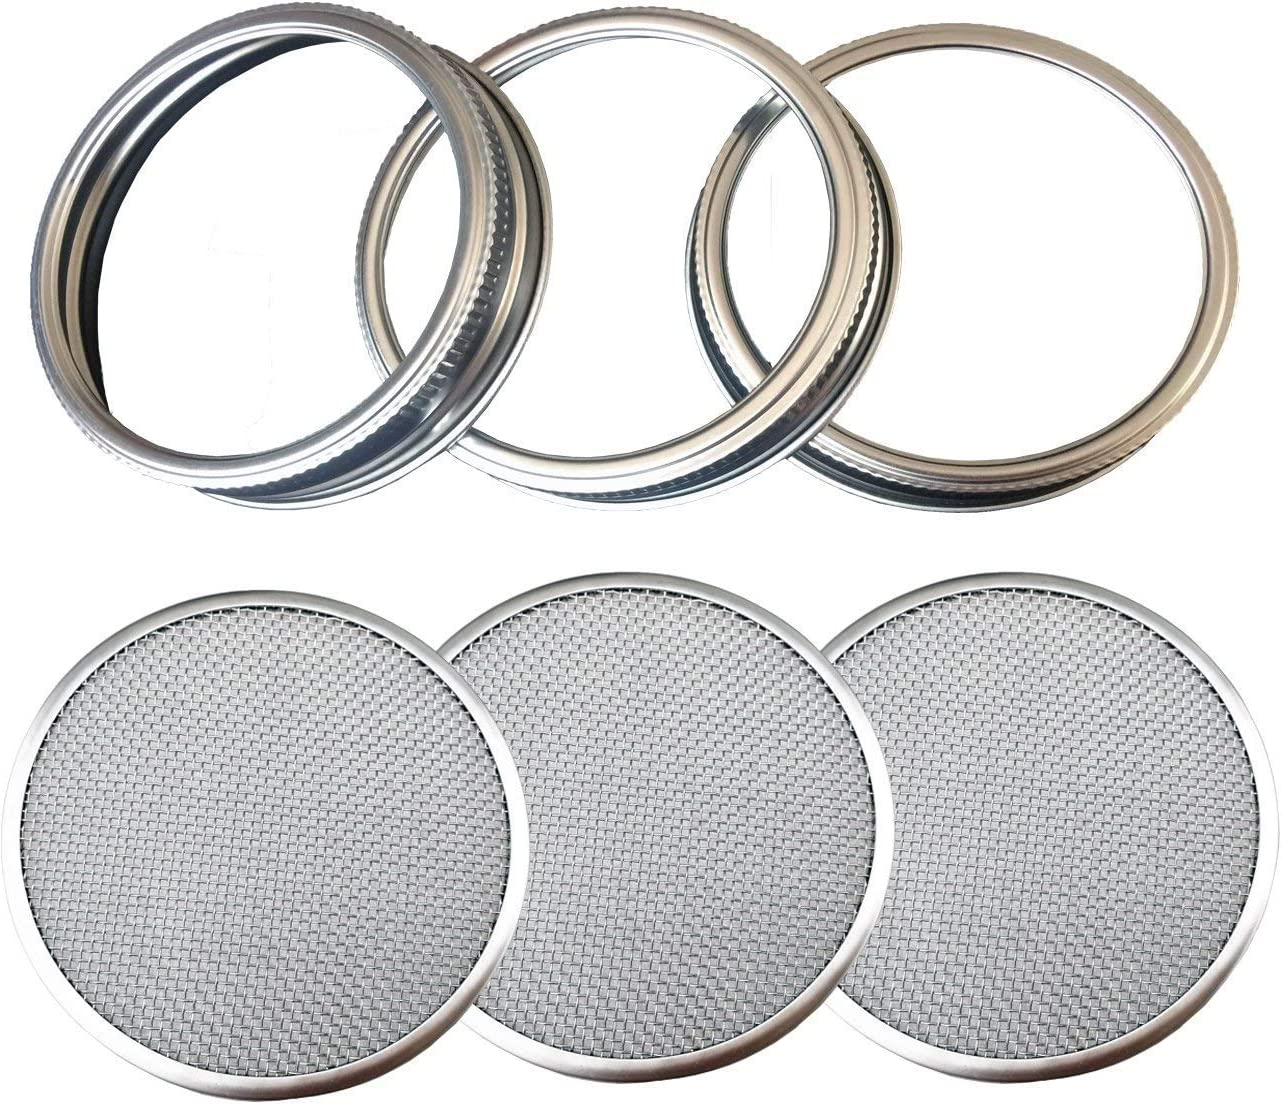 THINKCHANCES Food Safe,BPA Free Rust Resistant Stainless Steel Sprouting Screen Lids and Bands for Wide Mouth Mason Ball Canning Jars for Growing Organic Sprout Seeds at Your Home (Wide Mouth, 3 Pack)